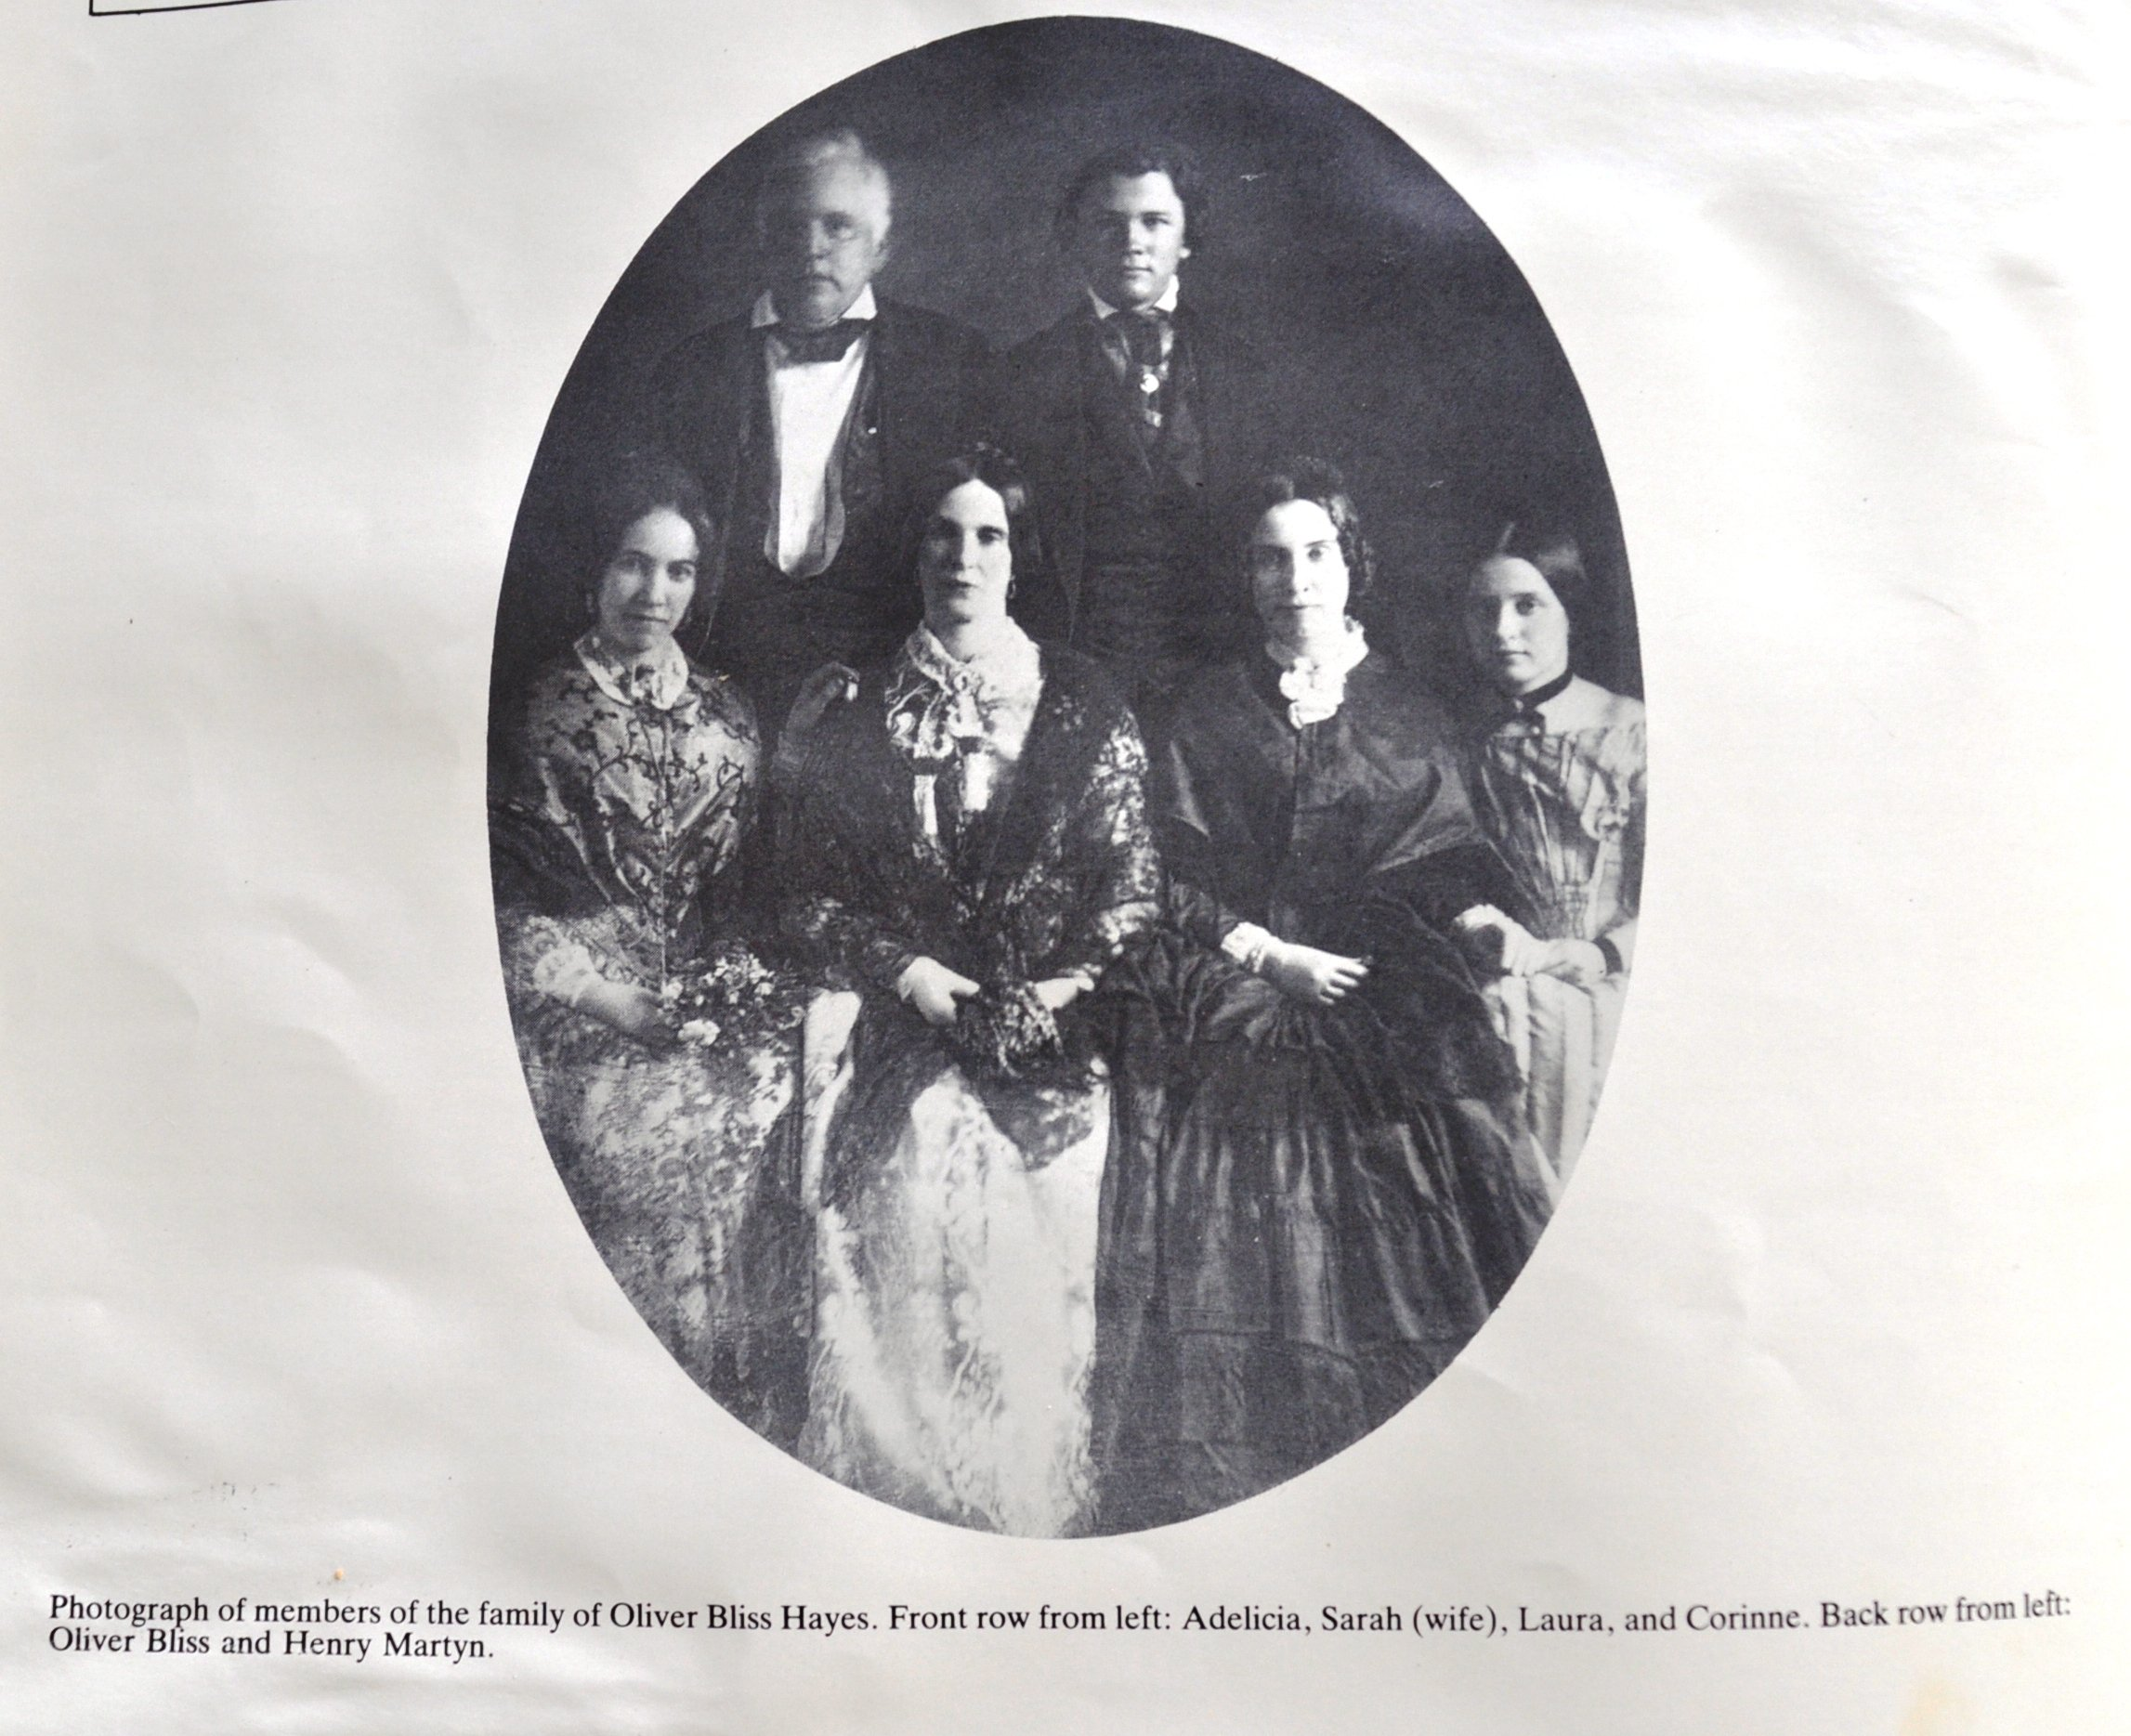 A photo of the author's ancestors. Adelicia is pictured on the far left while Corinne is on the far right.